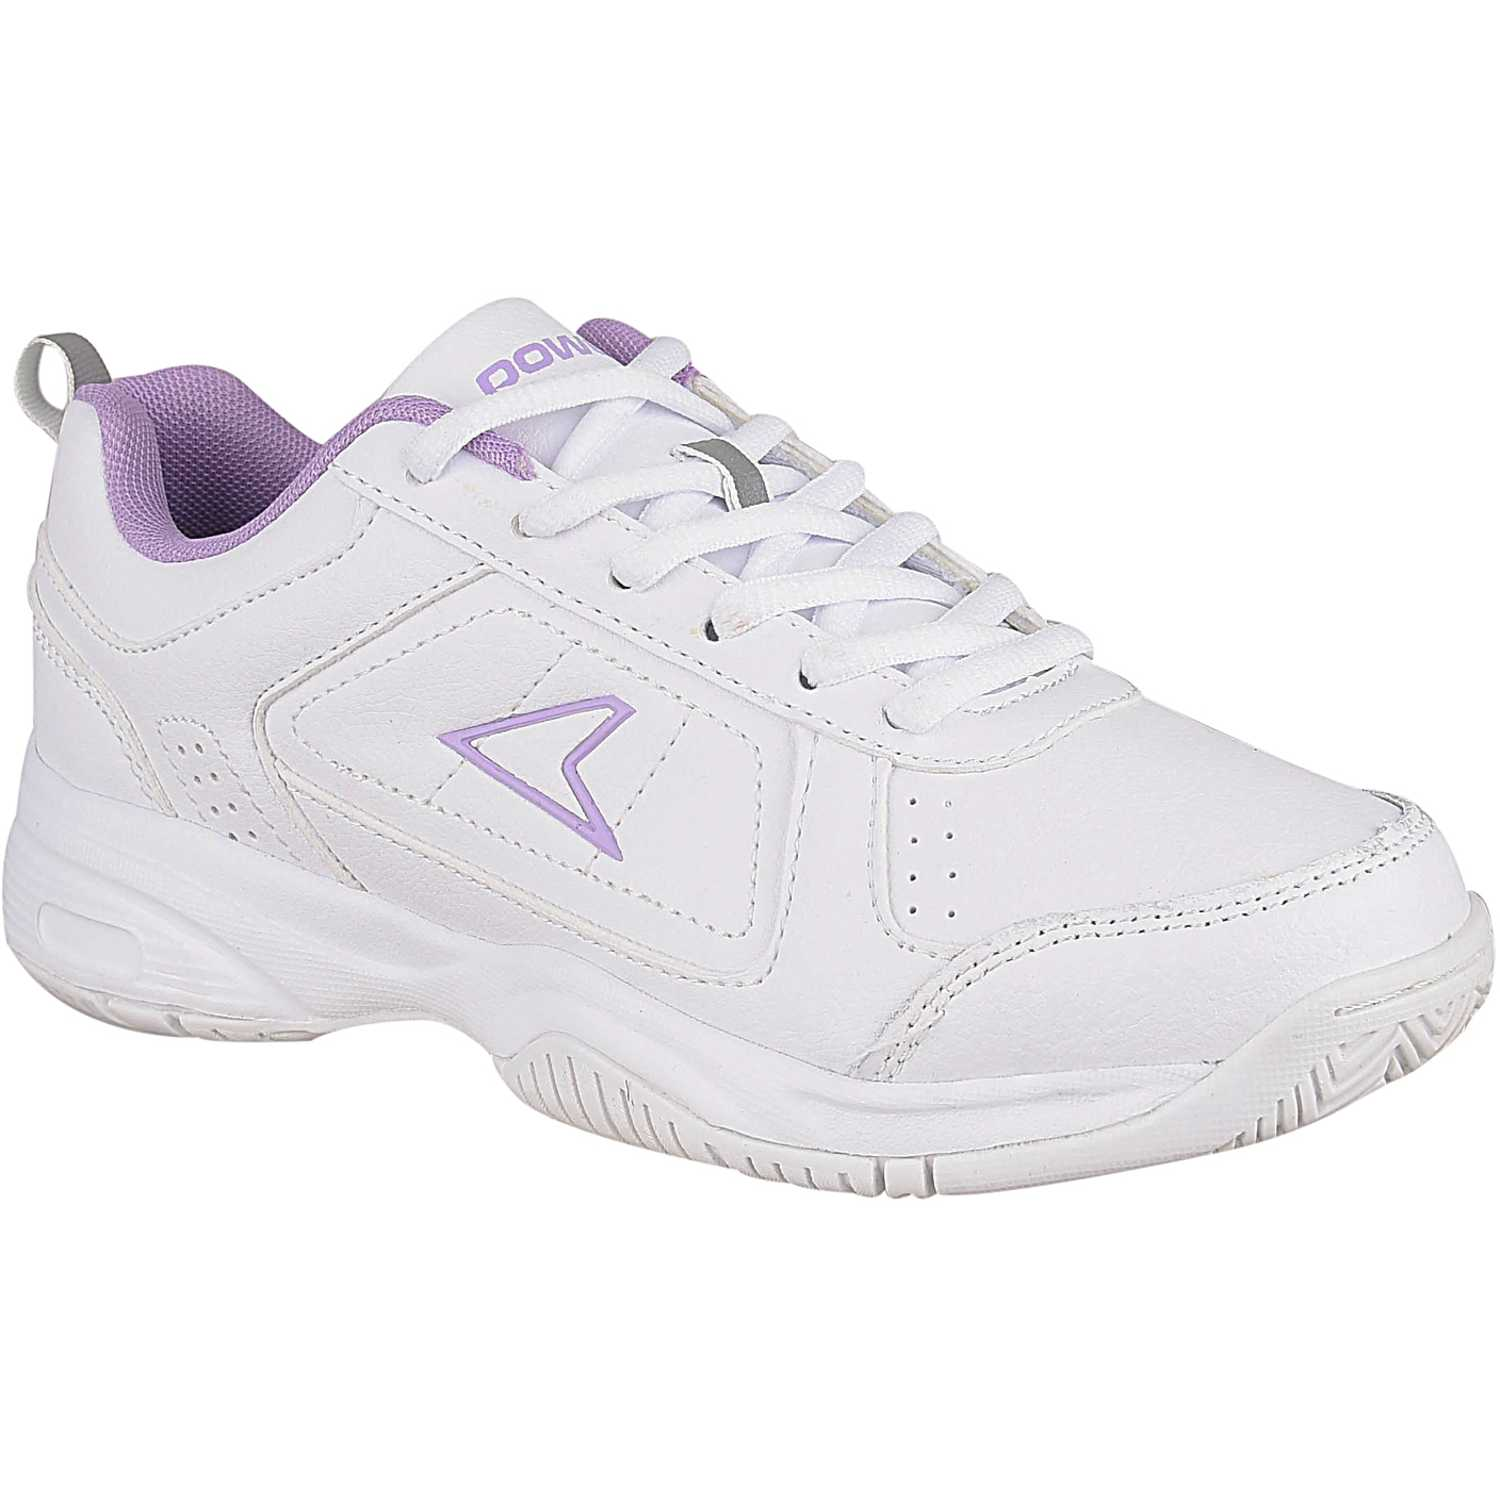 Zapatilla de Jovencita Power Blanco / lila chip mission pas 1308